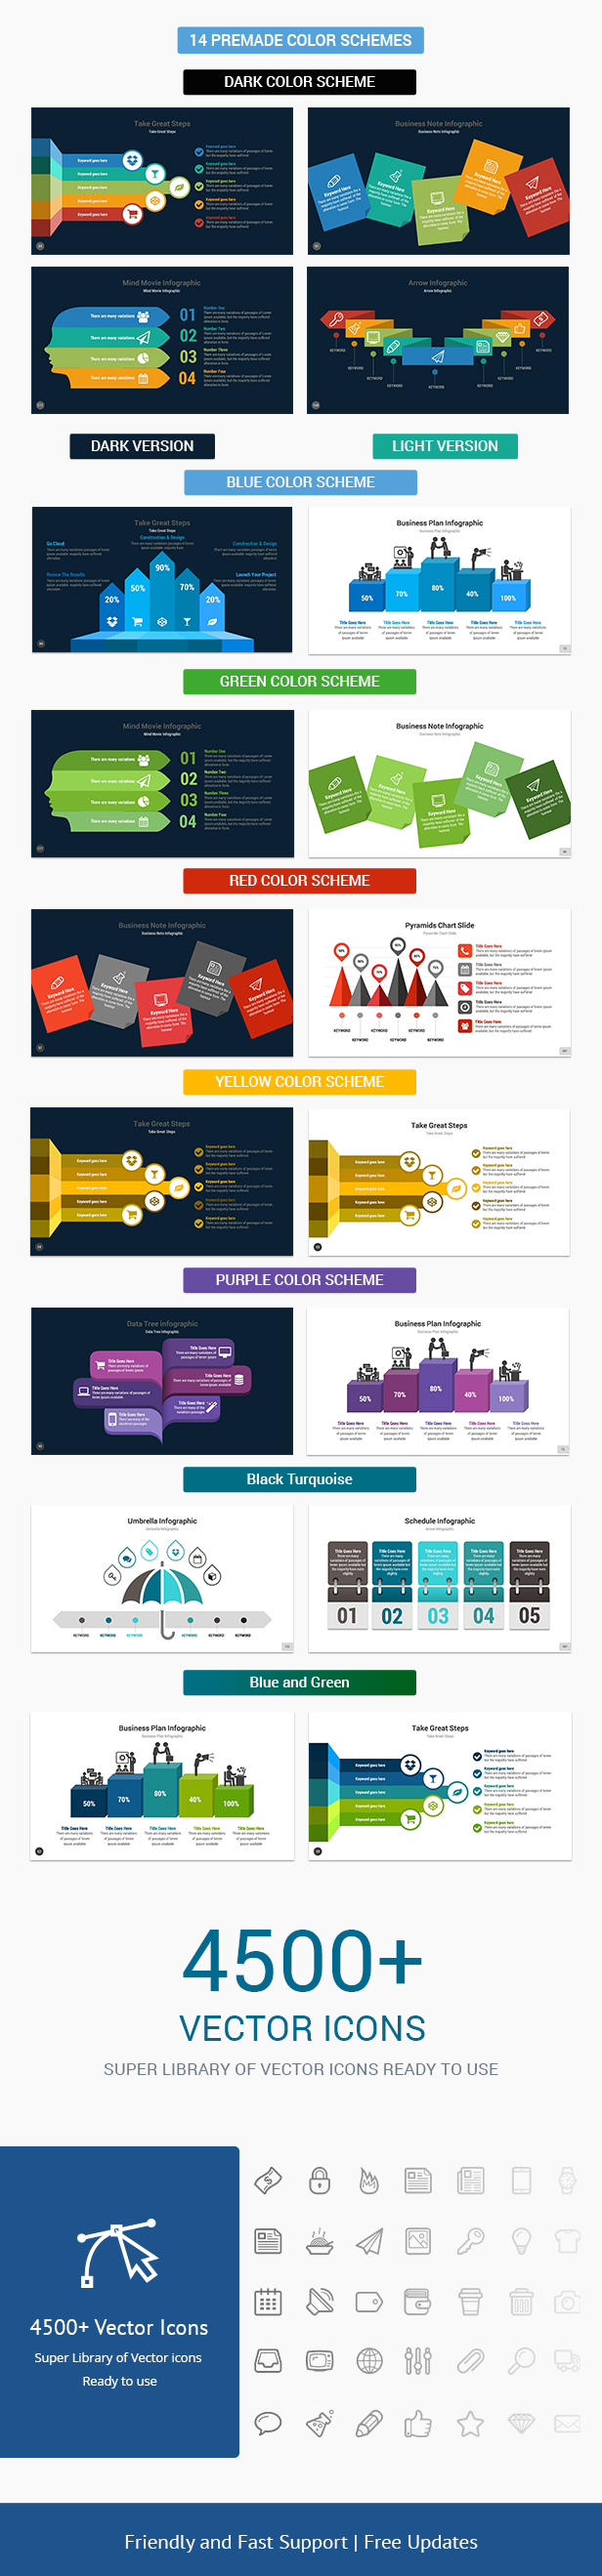 2 In 1 Multix Top Complete Business Solutions Keynote Presentation Templates Bundle - 5